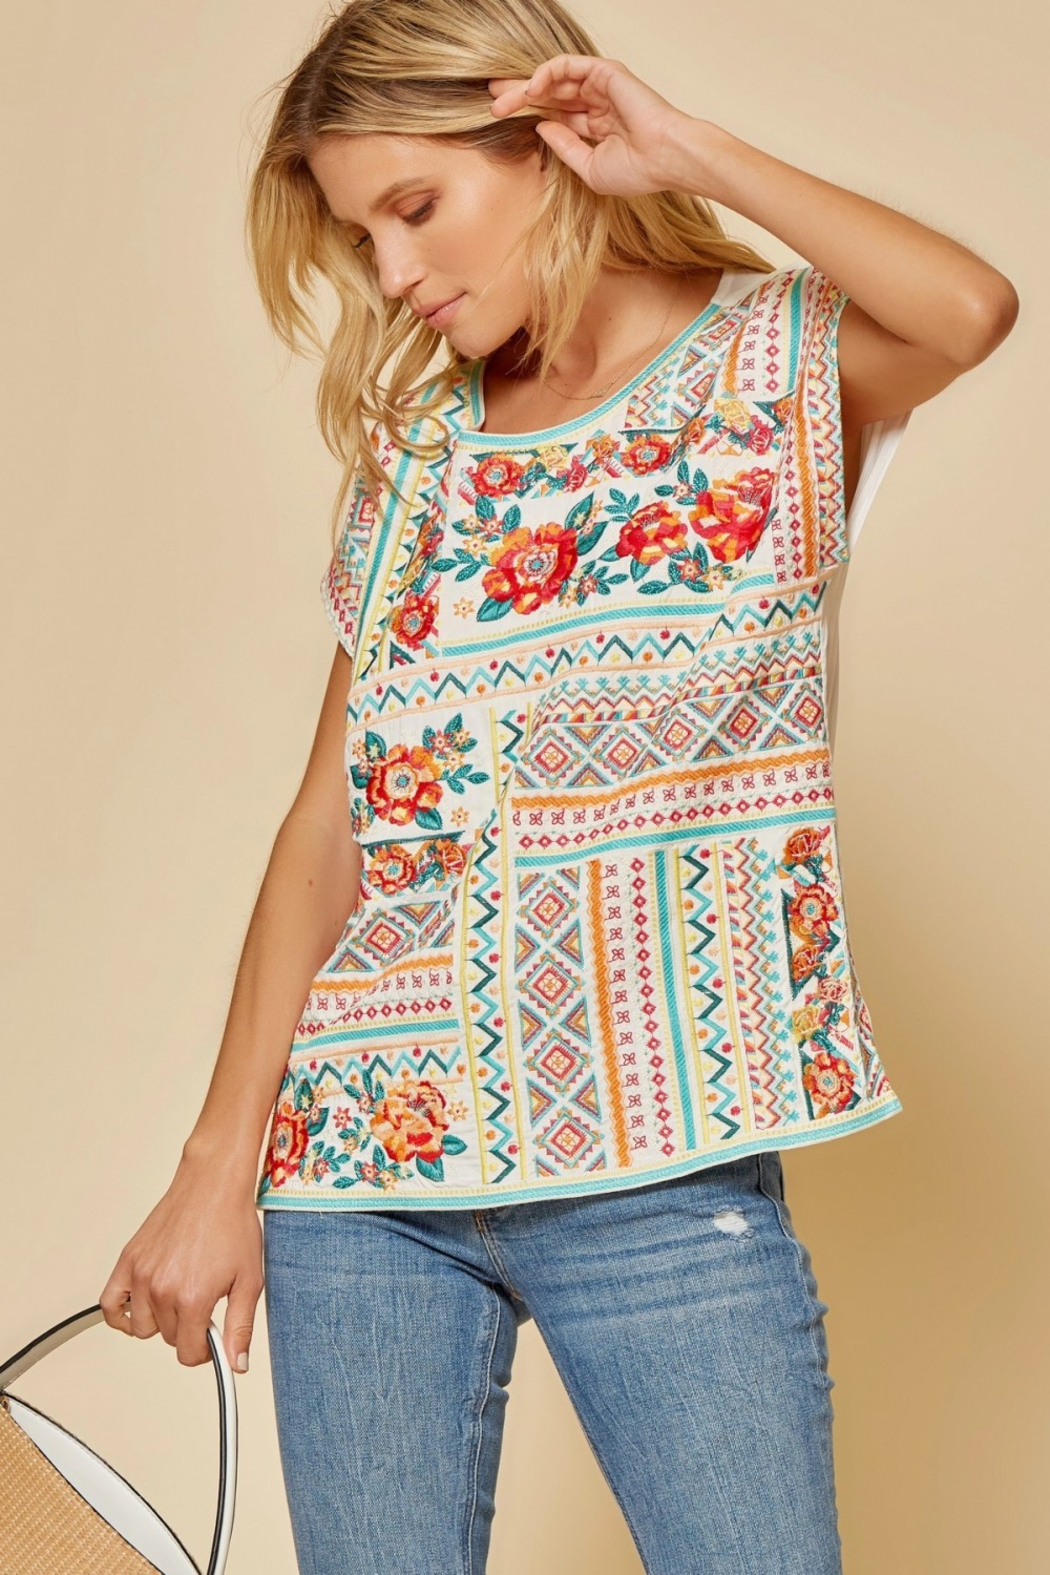 Savanna Jane Classic Beauty Embroidered Top - Front Full Image